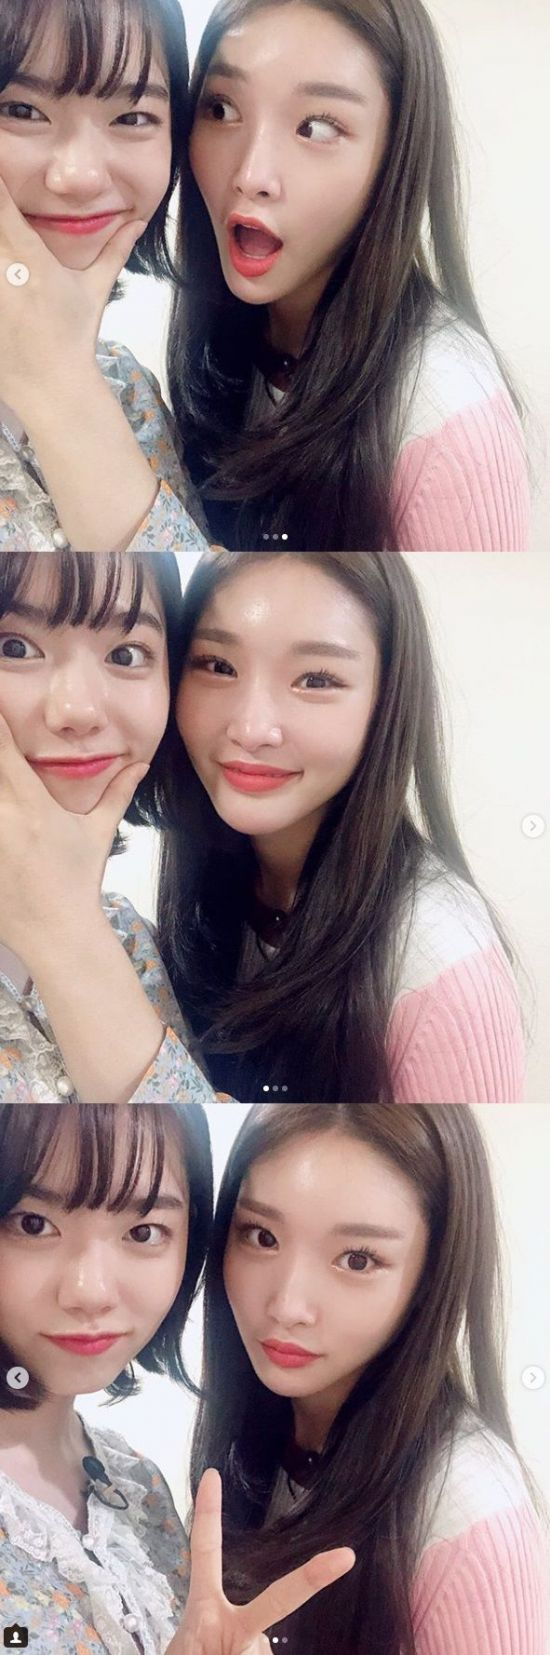 <p>As I was born from Group I.O.I (I.O. I) I was proud of my friendship as usual.</p><p>On September 27, Qing River posted three photos along with his sentence This is always beautiful to support us.</p><p>I am gazing at Camera with Kim So-hye transformed into a single-shot seeking out in publicly released photographs. They bring out laughter when trying to take a pose with expressions full of playfulness as well as refreshing expression. Their unchanged friendship brought warmth to the fans.</p><p>On the other hand, Kim So-hye appeared in the cable TV Mnet Produce 101 season 1, finally debuted in the debut group selection, I.O.I and worked and received many love.</p>